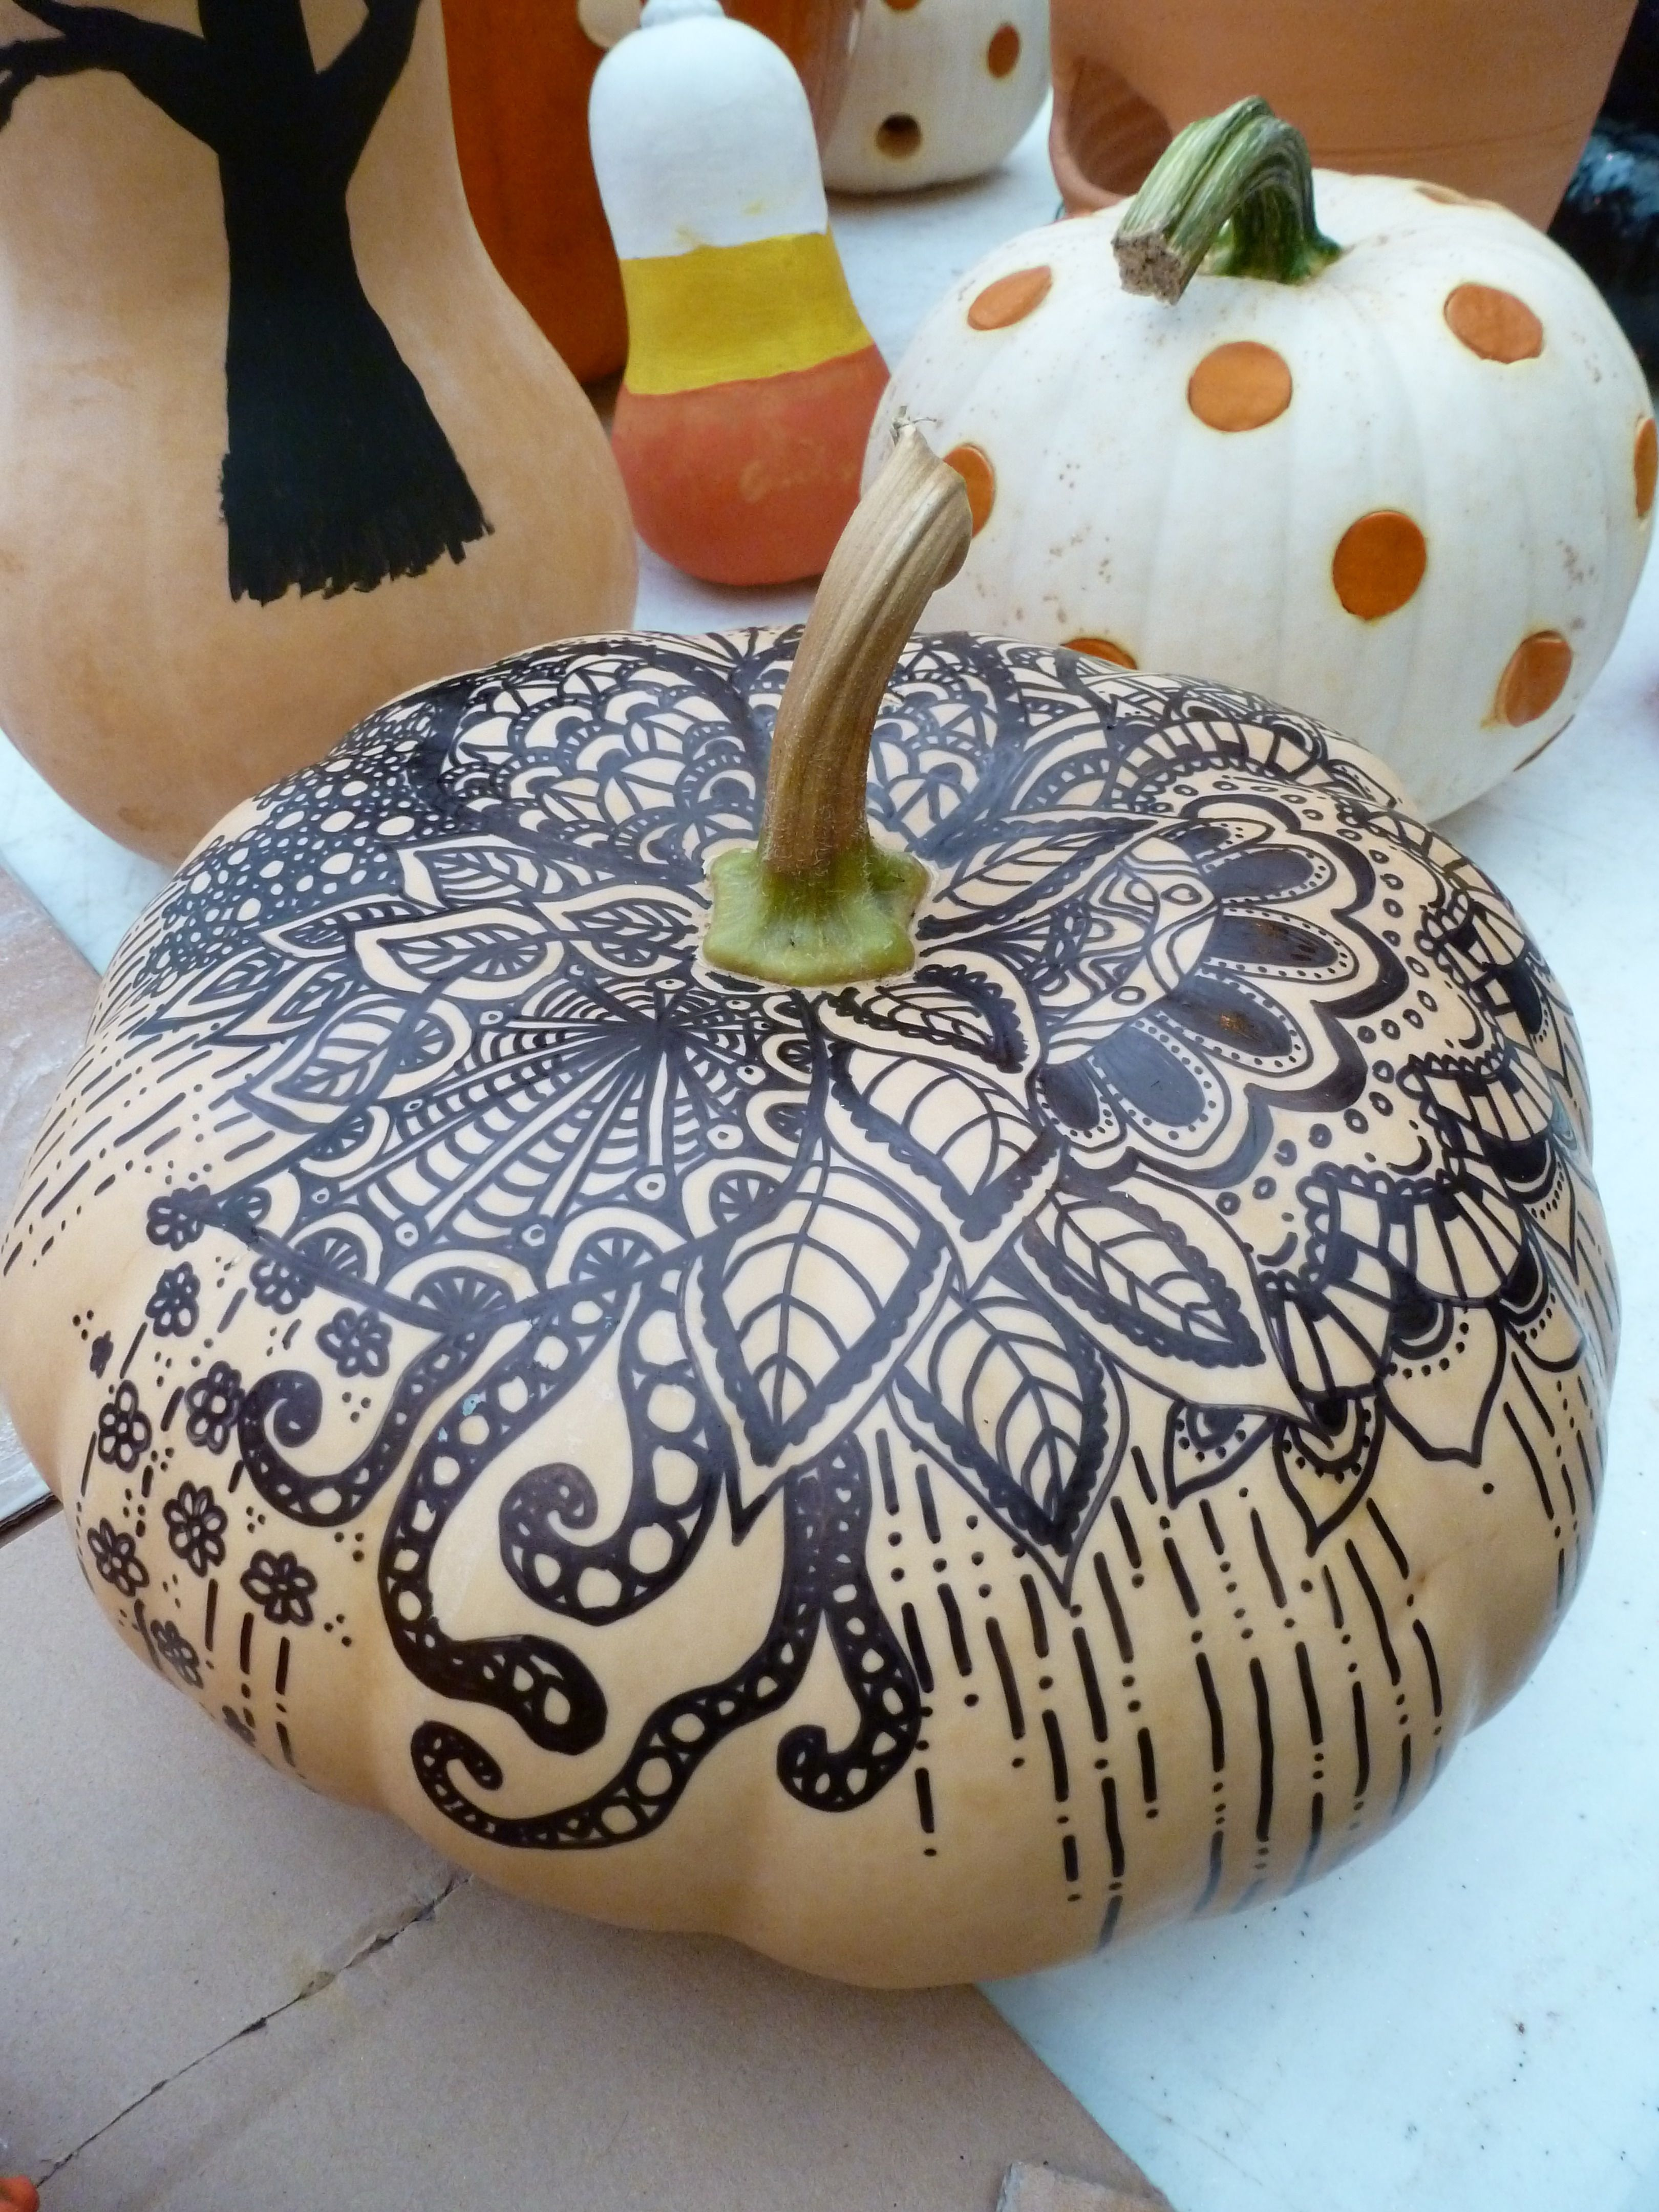 Doodles with a Sharpie on a Cheese Pumpkin. No cutting